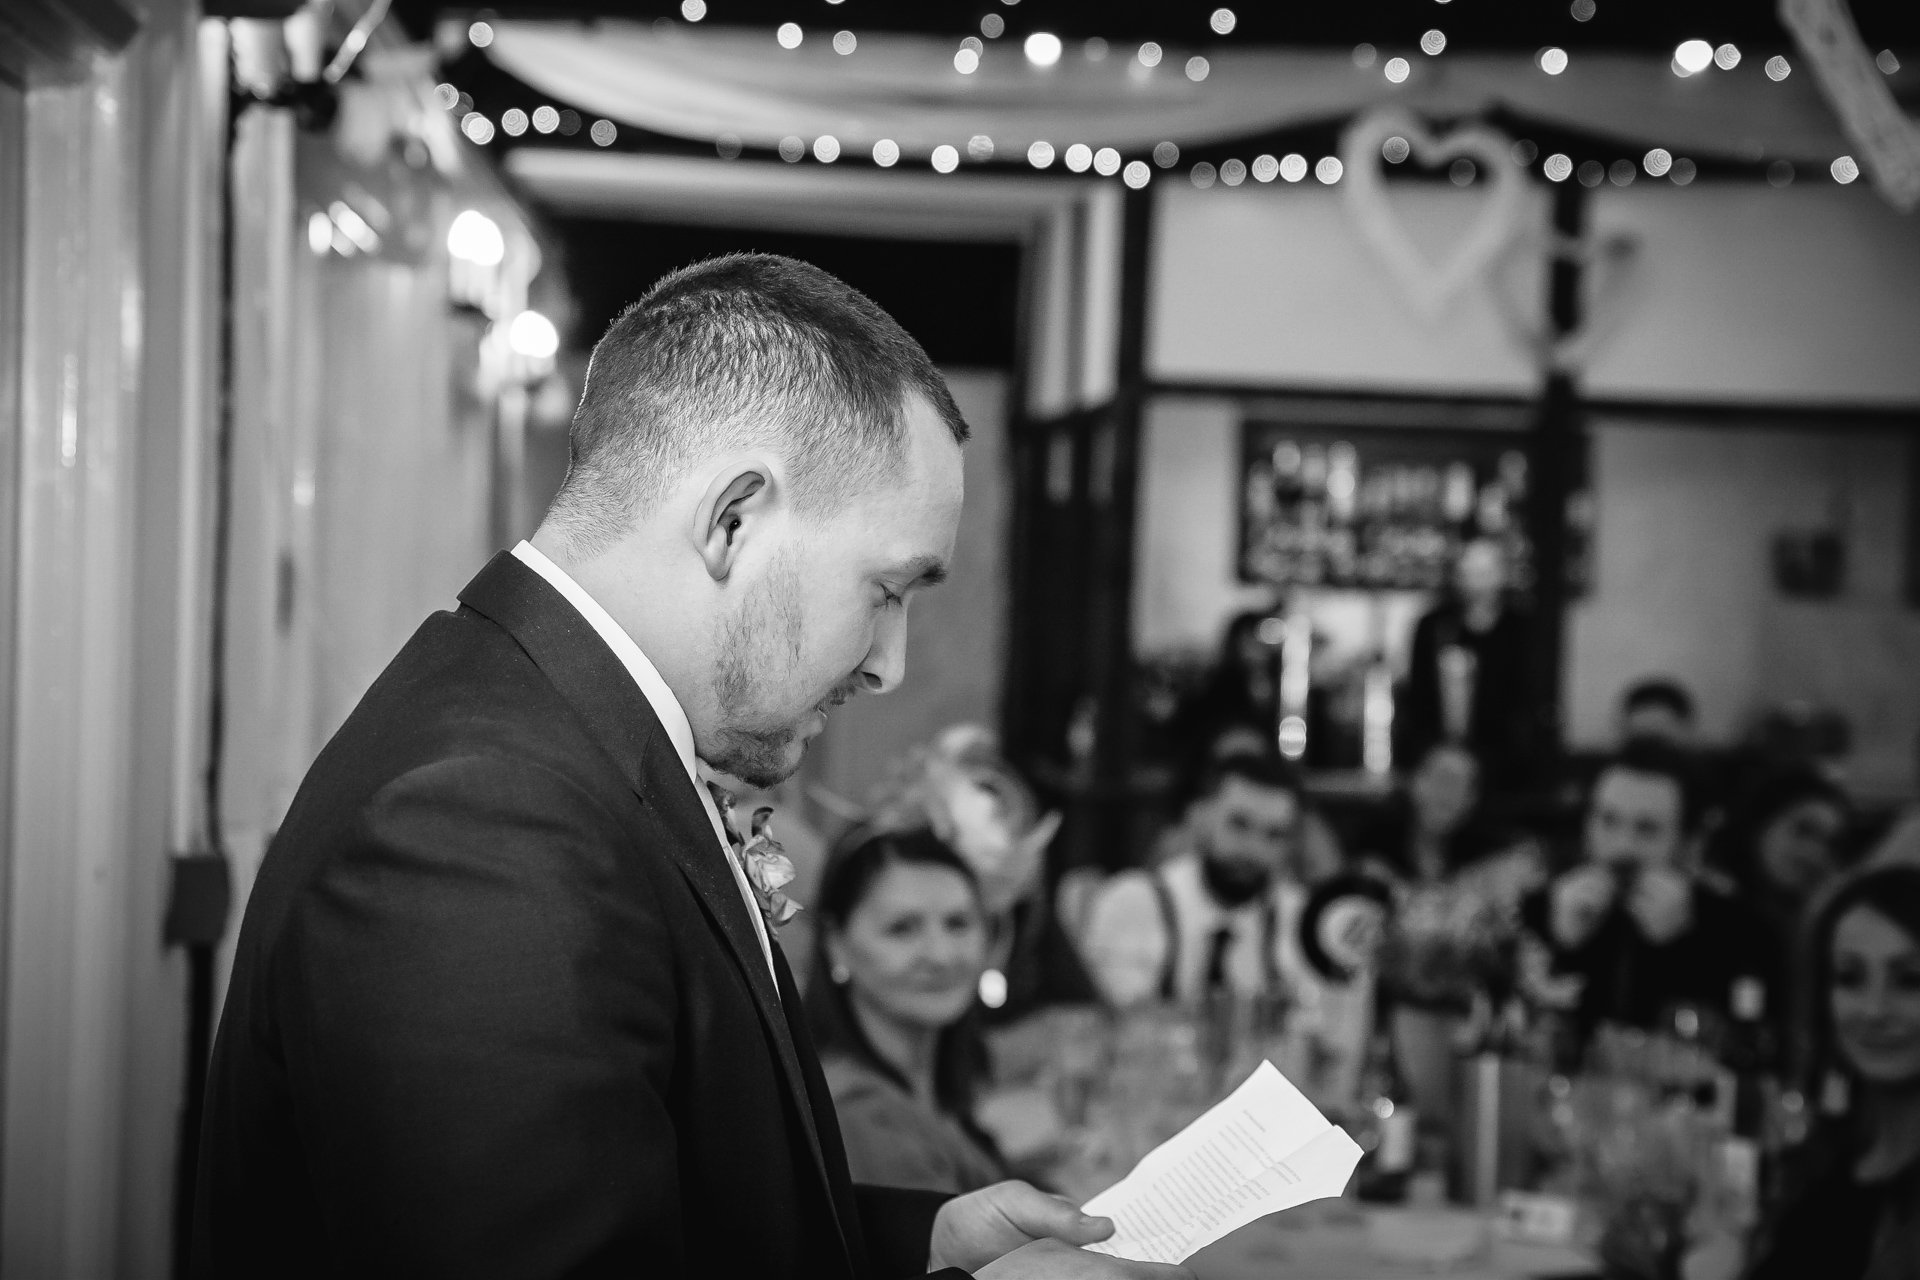 Brides son making a speech after their wedding at The Bull Hotel Wrotham